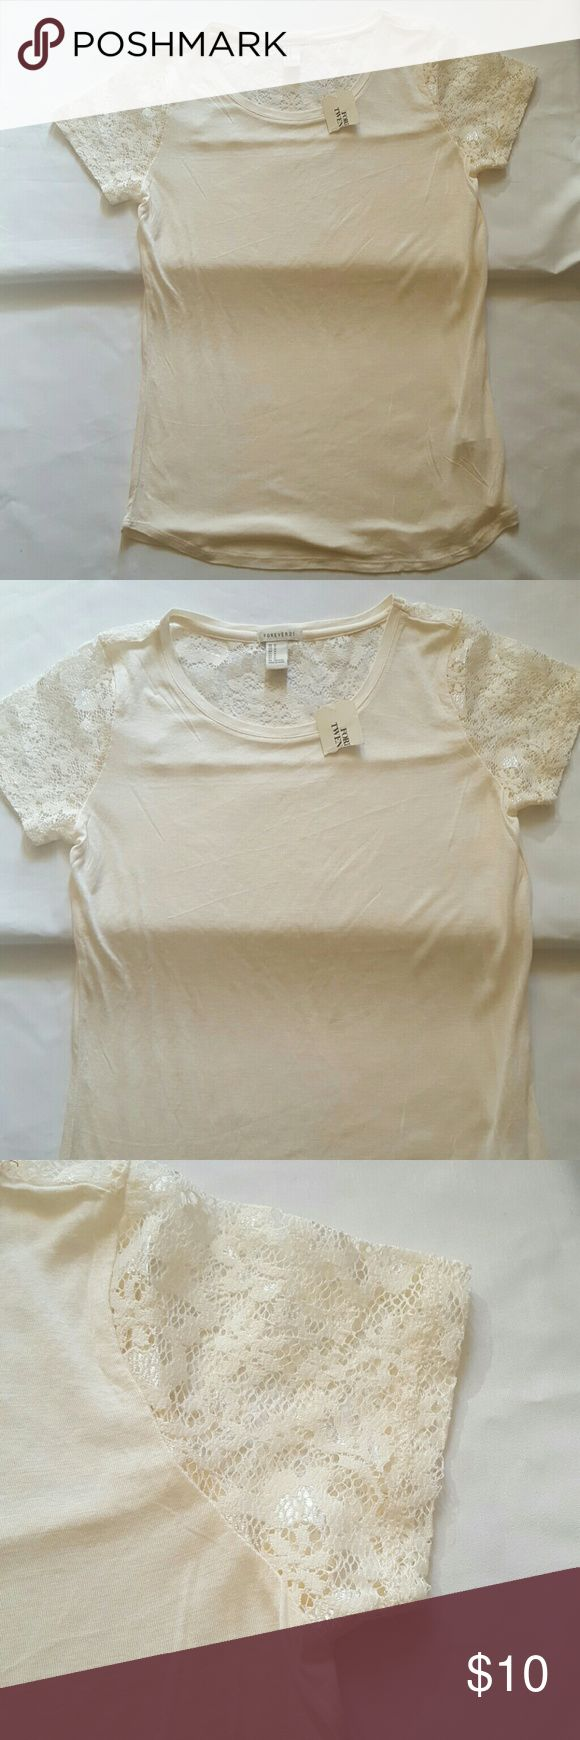 Forever21 Women's cream Lace blouse Forever 21 Women's Lace Sleeve Crew Neck T-shirt Color cream New with tags  Size medium    Lying flat, it measures  from underarm to underarm 15 inches double that around and it's 30 inches Shoulder to bottom of shirt measure 25 inches Forever 21 Tops Blouses